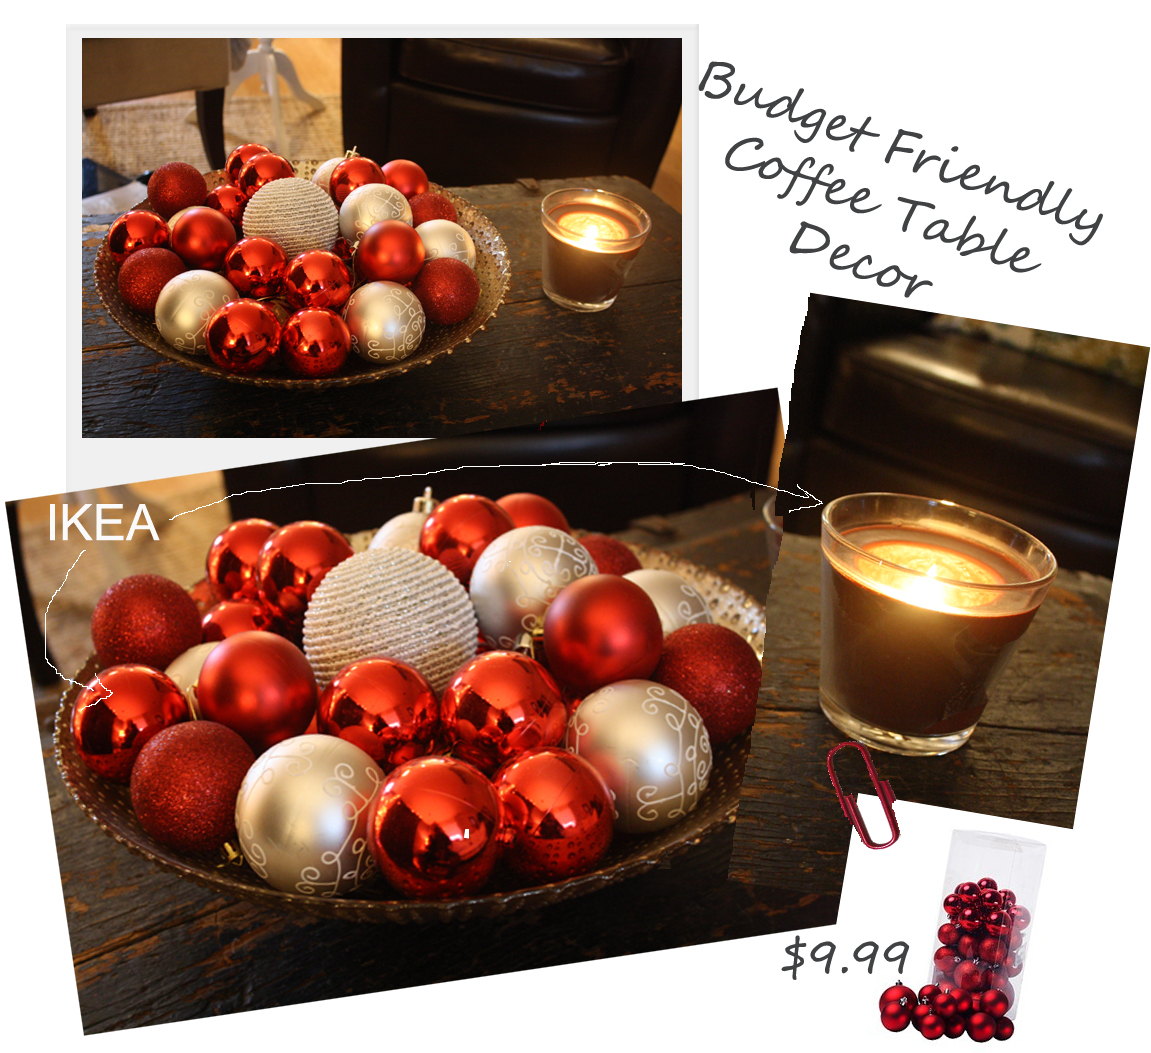 Ikea Christmas Decorations 2012: Environmental Designer Home-furniture: It's Looking A Lot